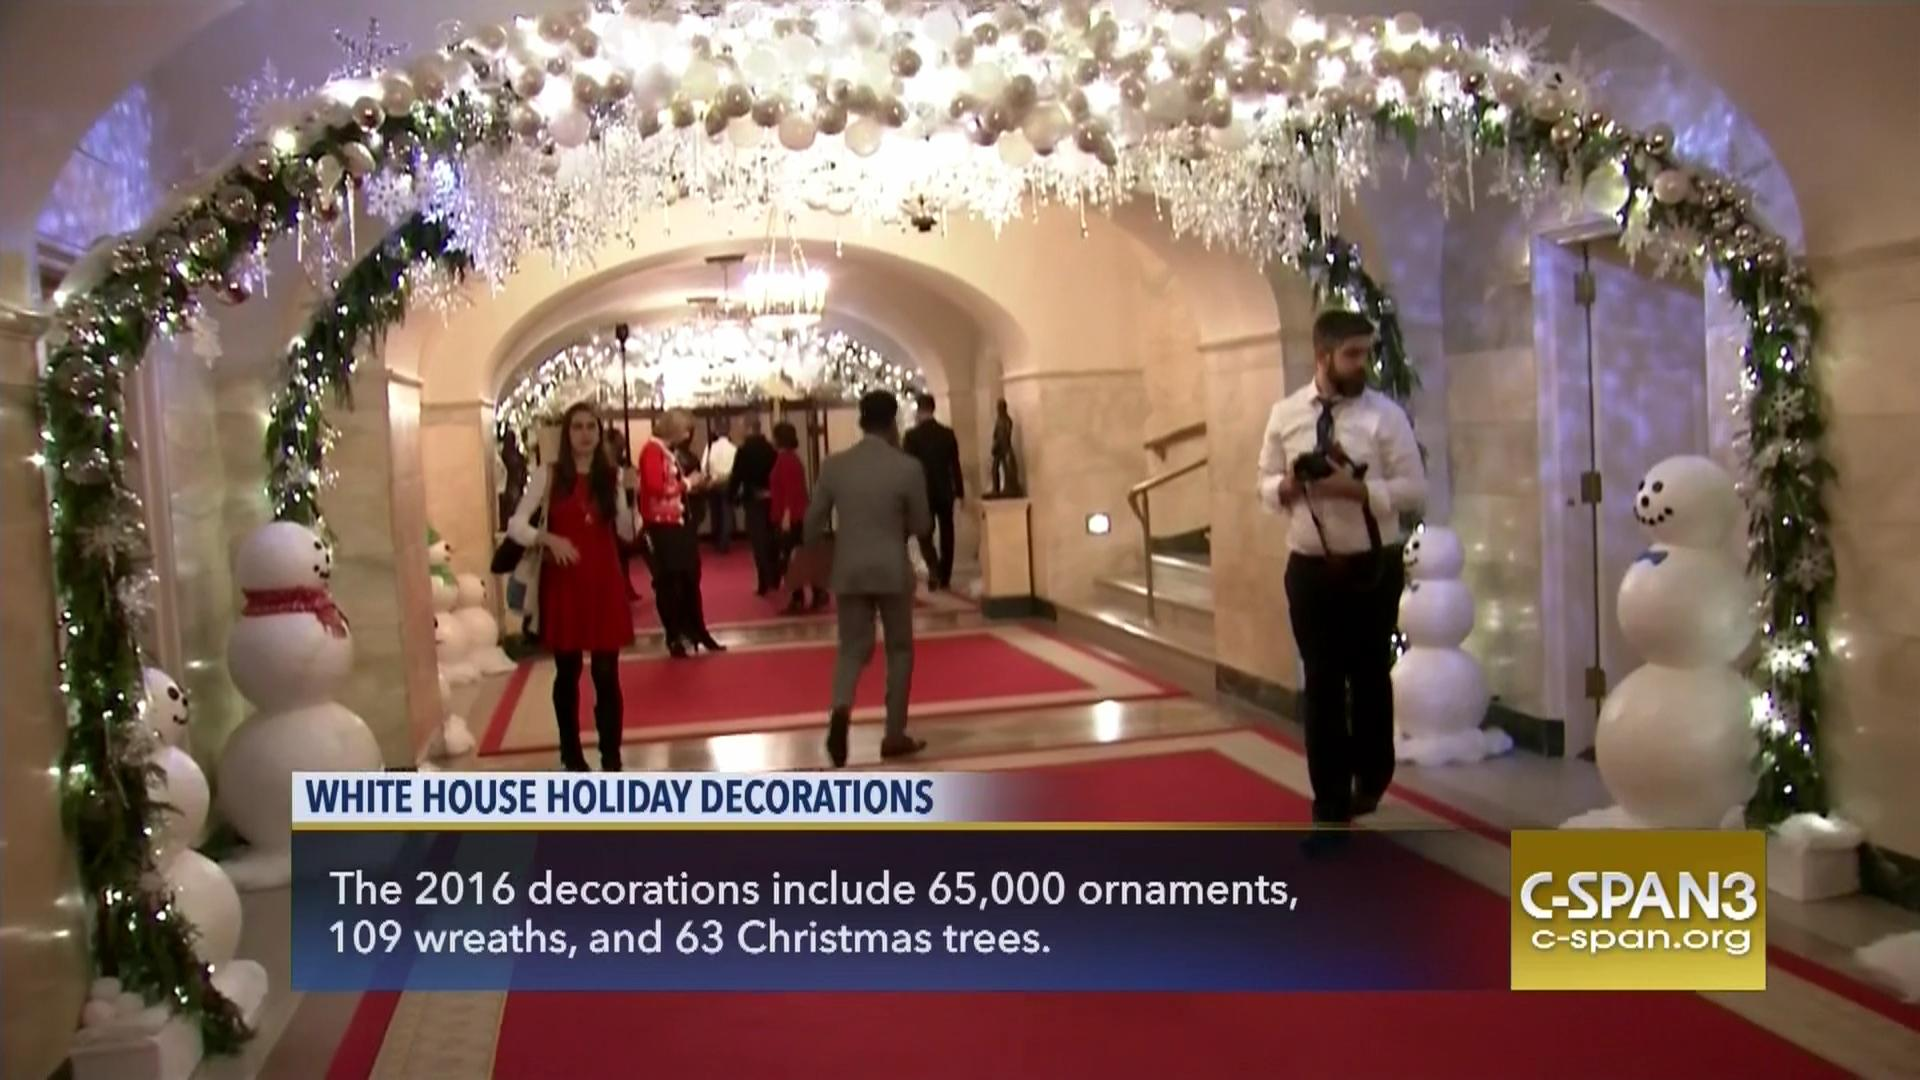 white house 2016 holiday decorations preview nov 29 2016 video c spanorg - White House Christmas Decorations 2016